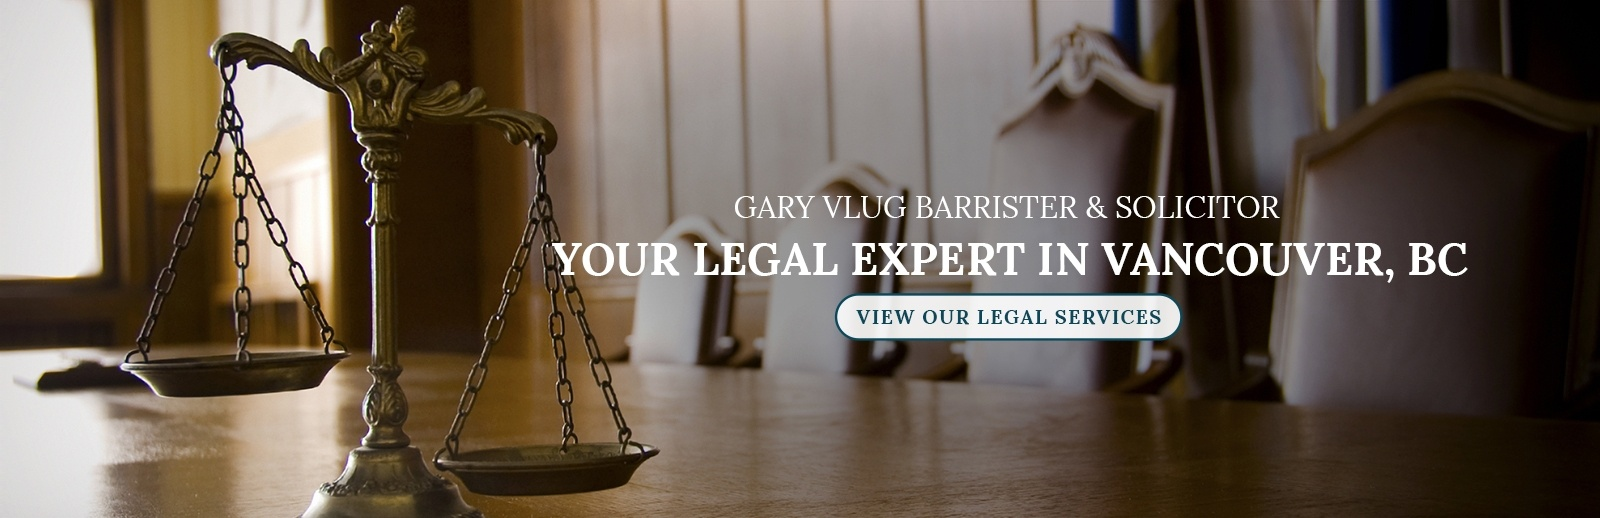 Trusted Lawyer Vancouver BC